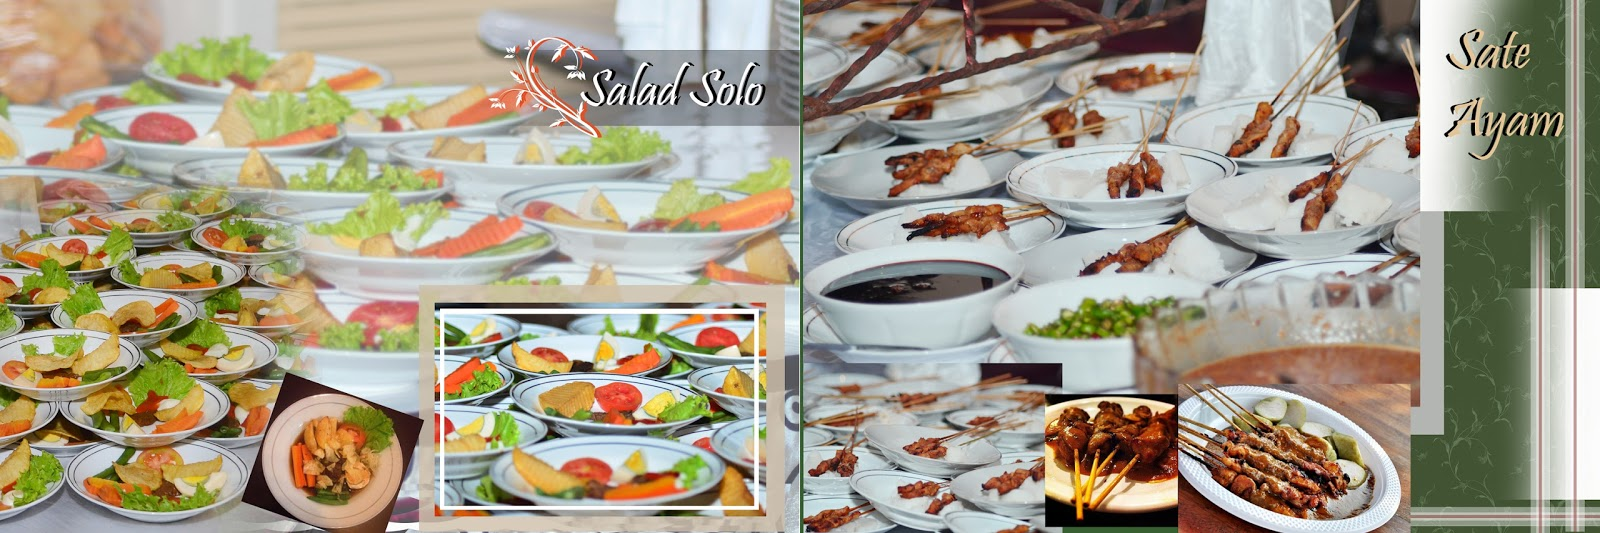 Tag: catering diet mayo solo